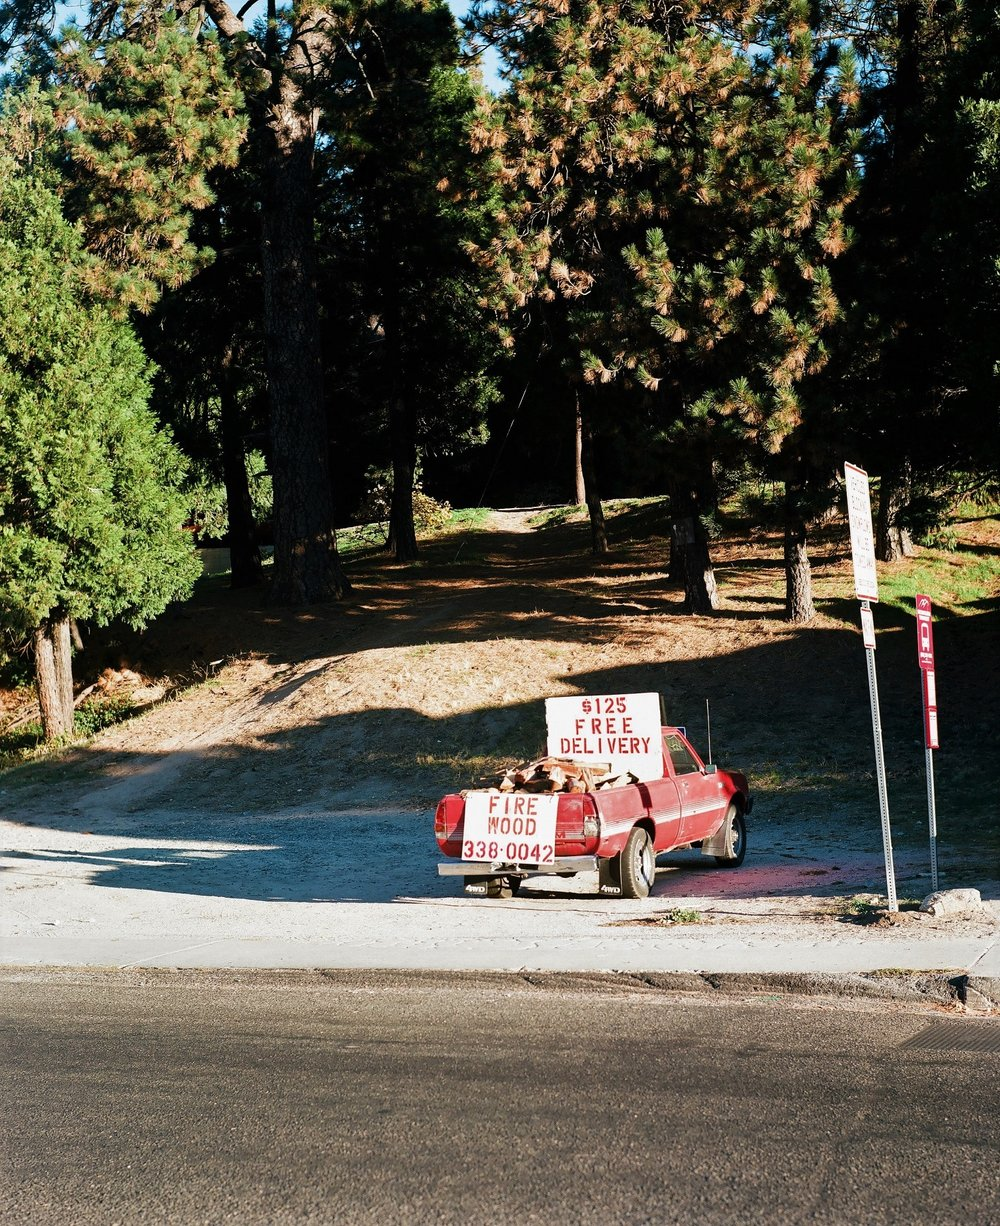 Crestline, California_Mamiya Super 23, 3.5f=100m_Kyle Everett Smith_9.jpg